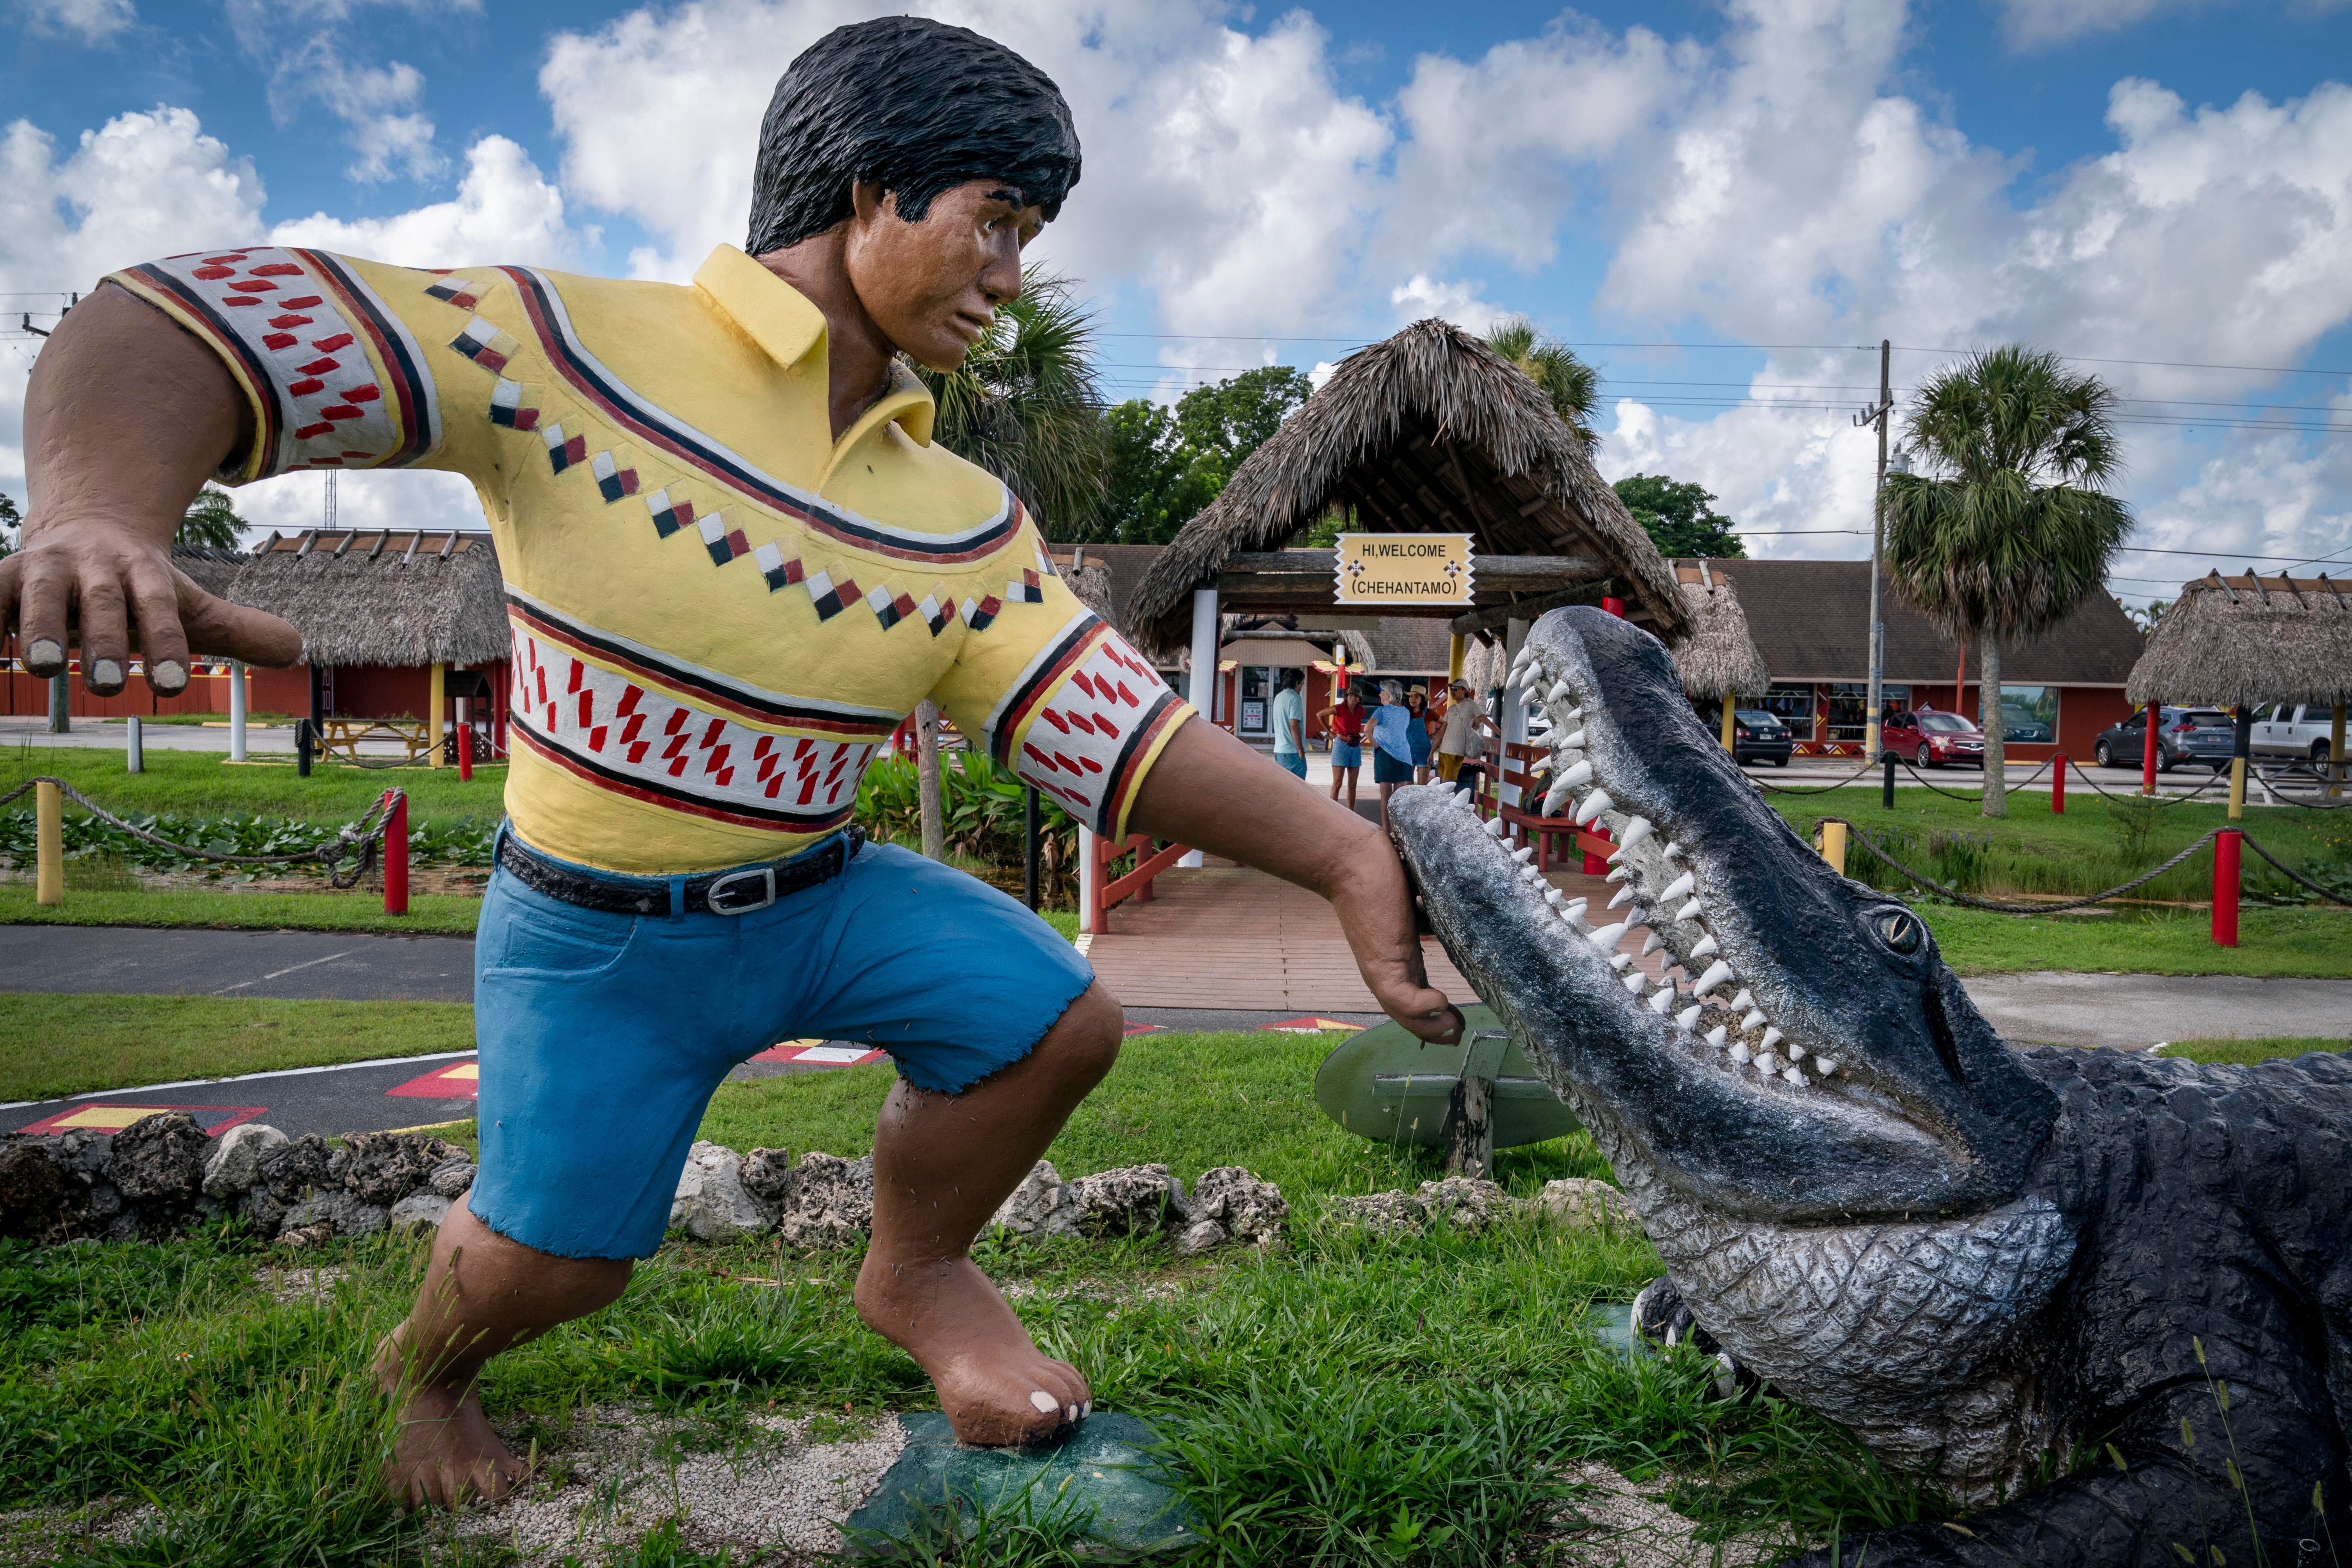 The Miccosukee Indian Village is on Tamiami Trail west of Miami. The tourist attraction showcases Miccosukee tribal arts and culture with a museum, gift shop, airboat rides and alligator wrestling.